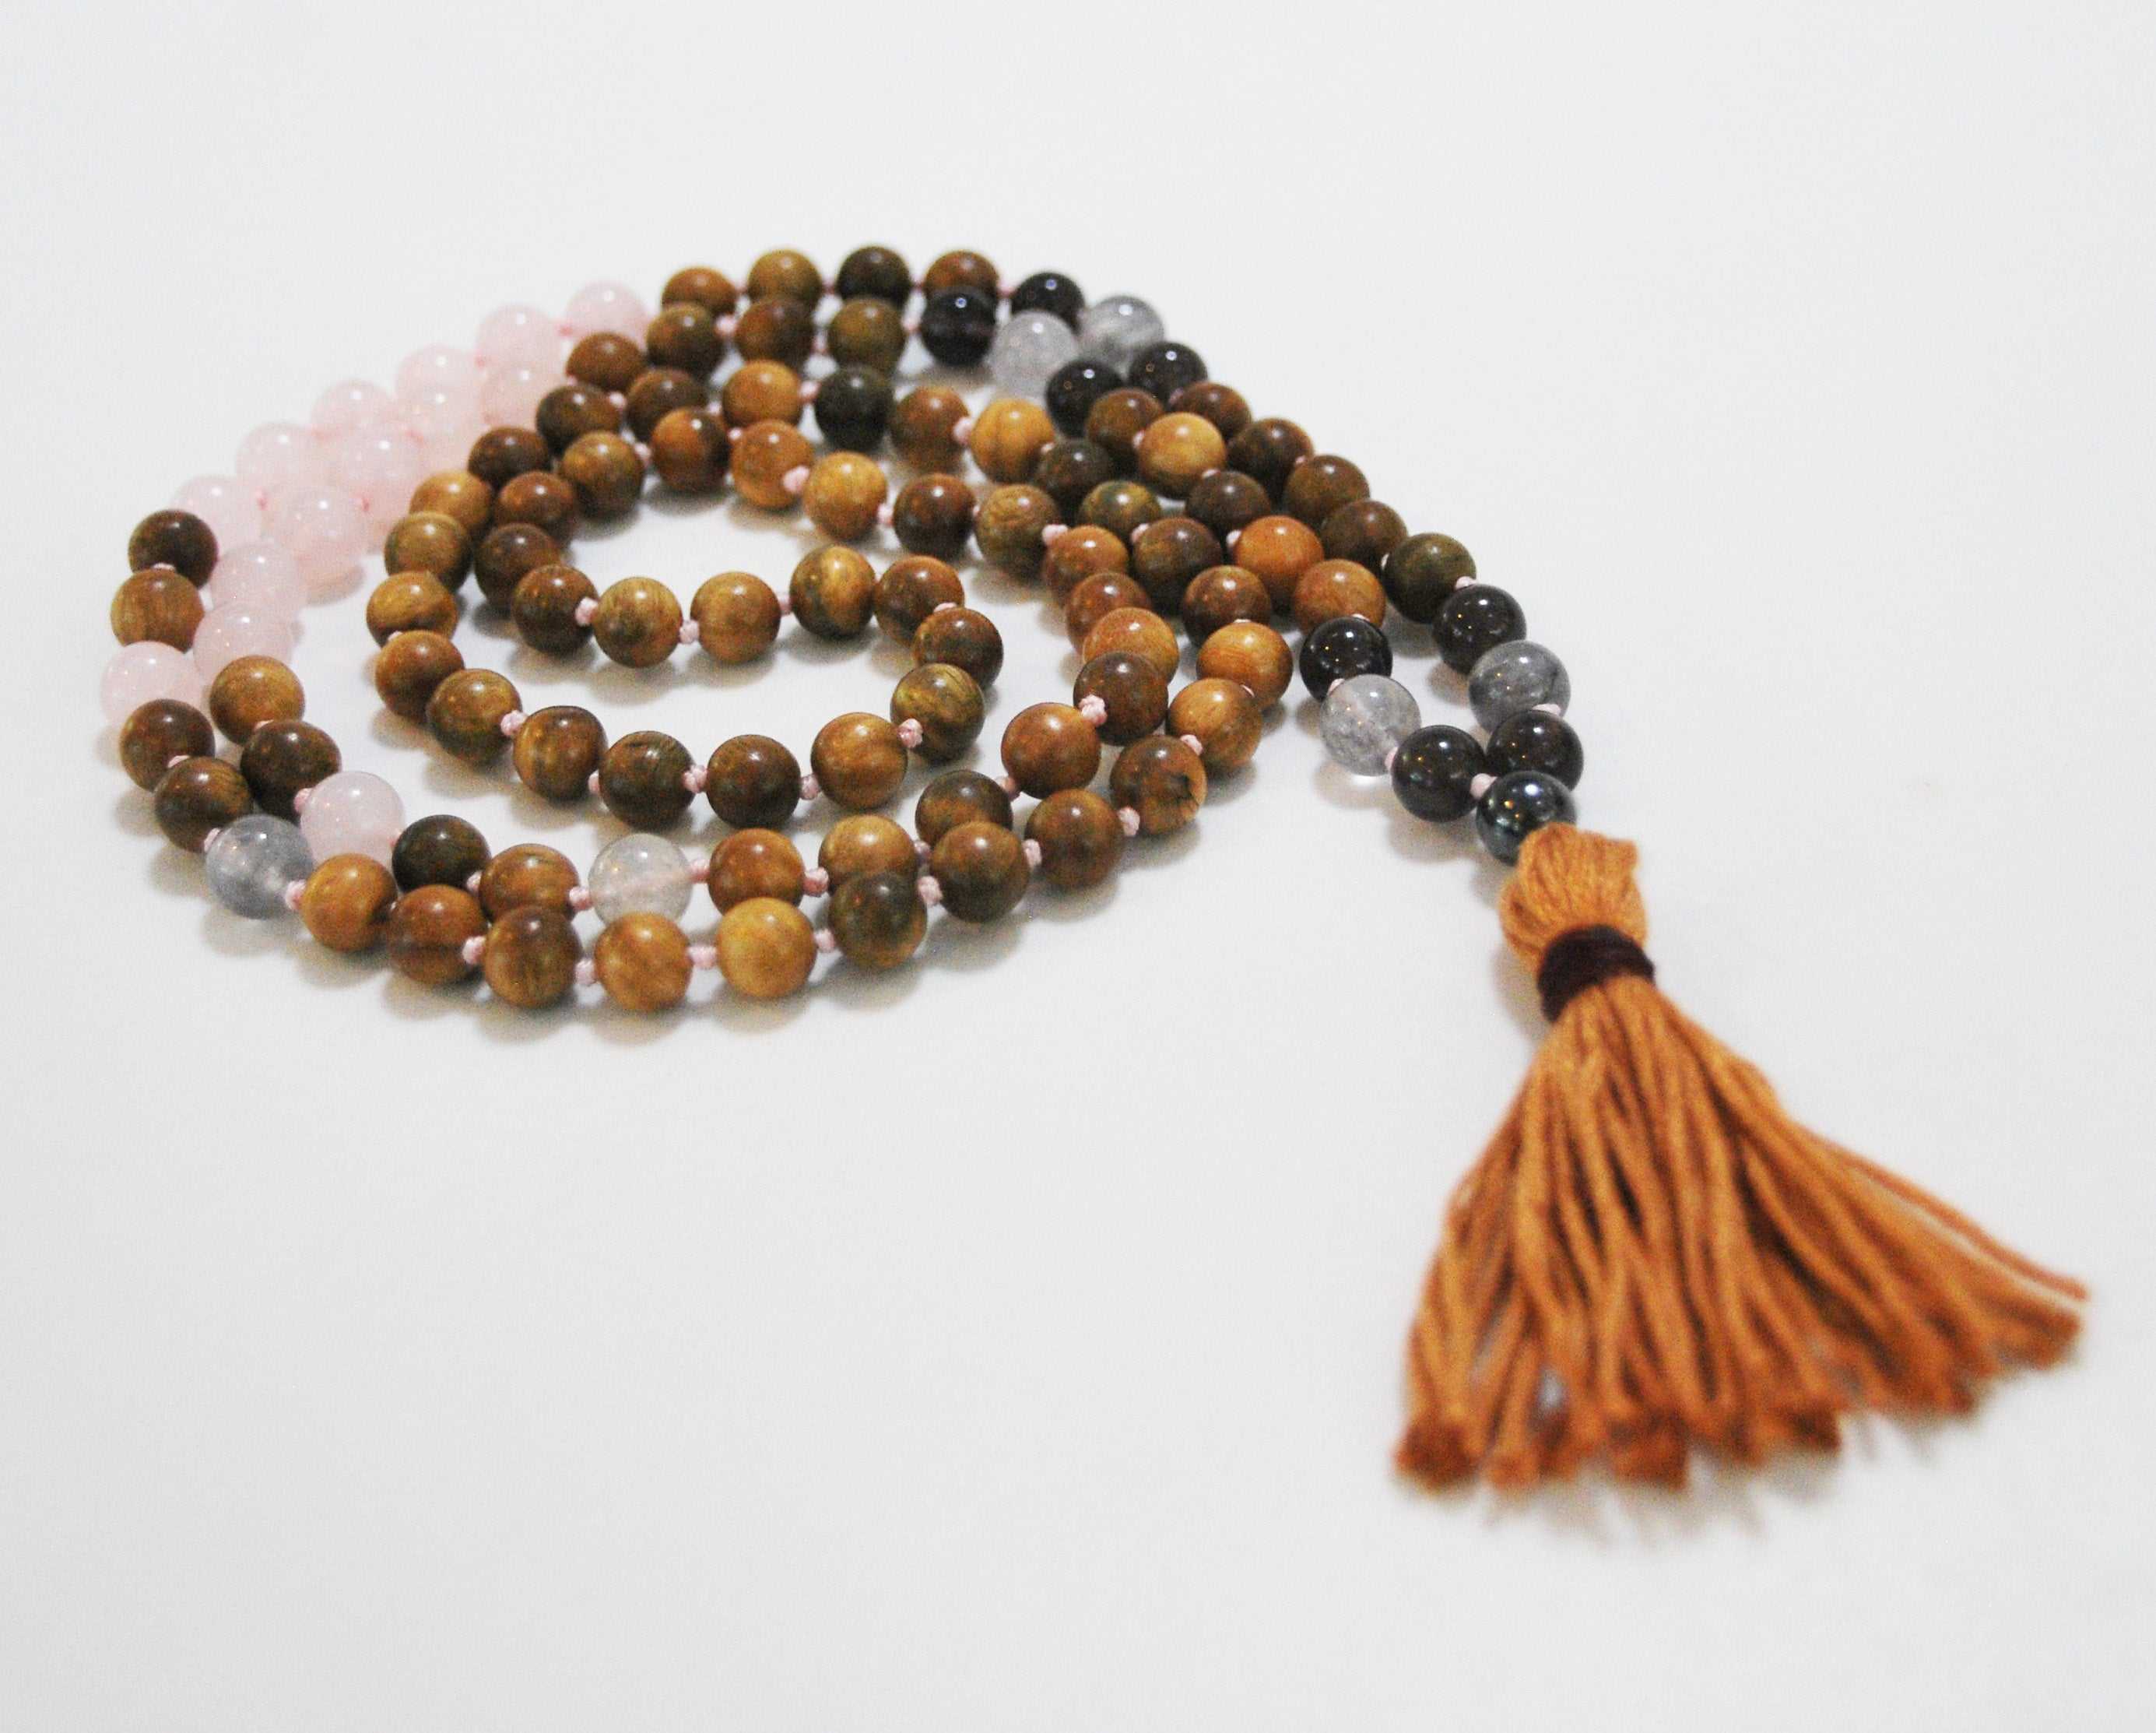 8mm Green Sandalwood & Rose Quartz 108 Knotted Mala Necklace with Cotton Tassel